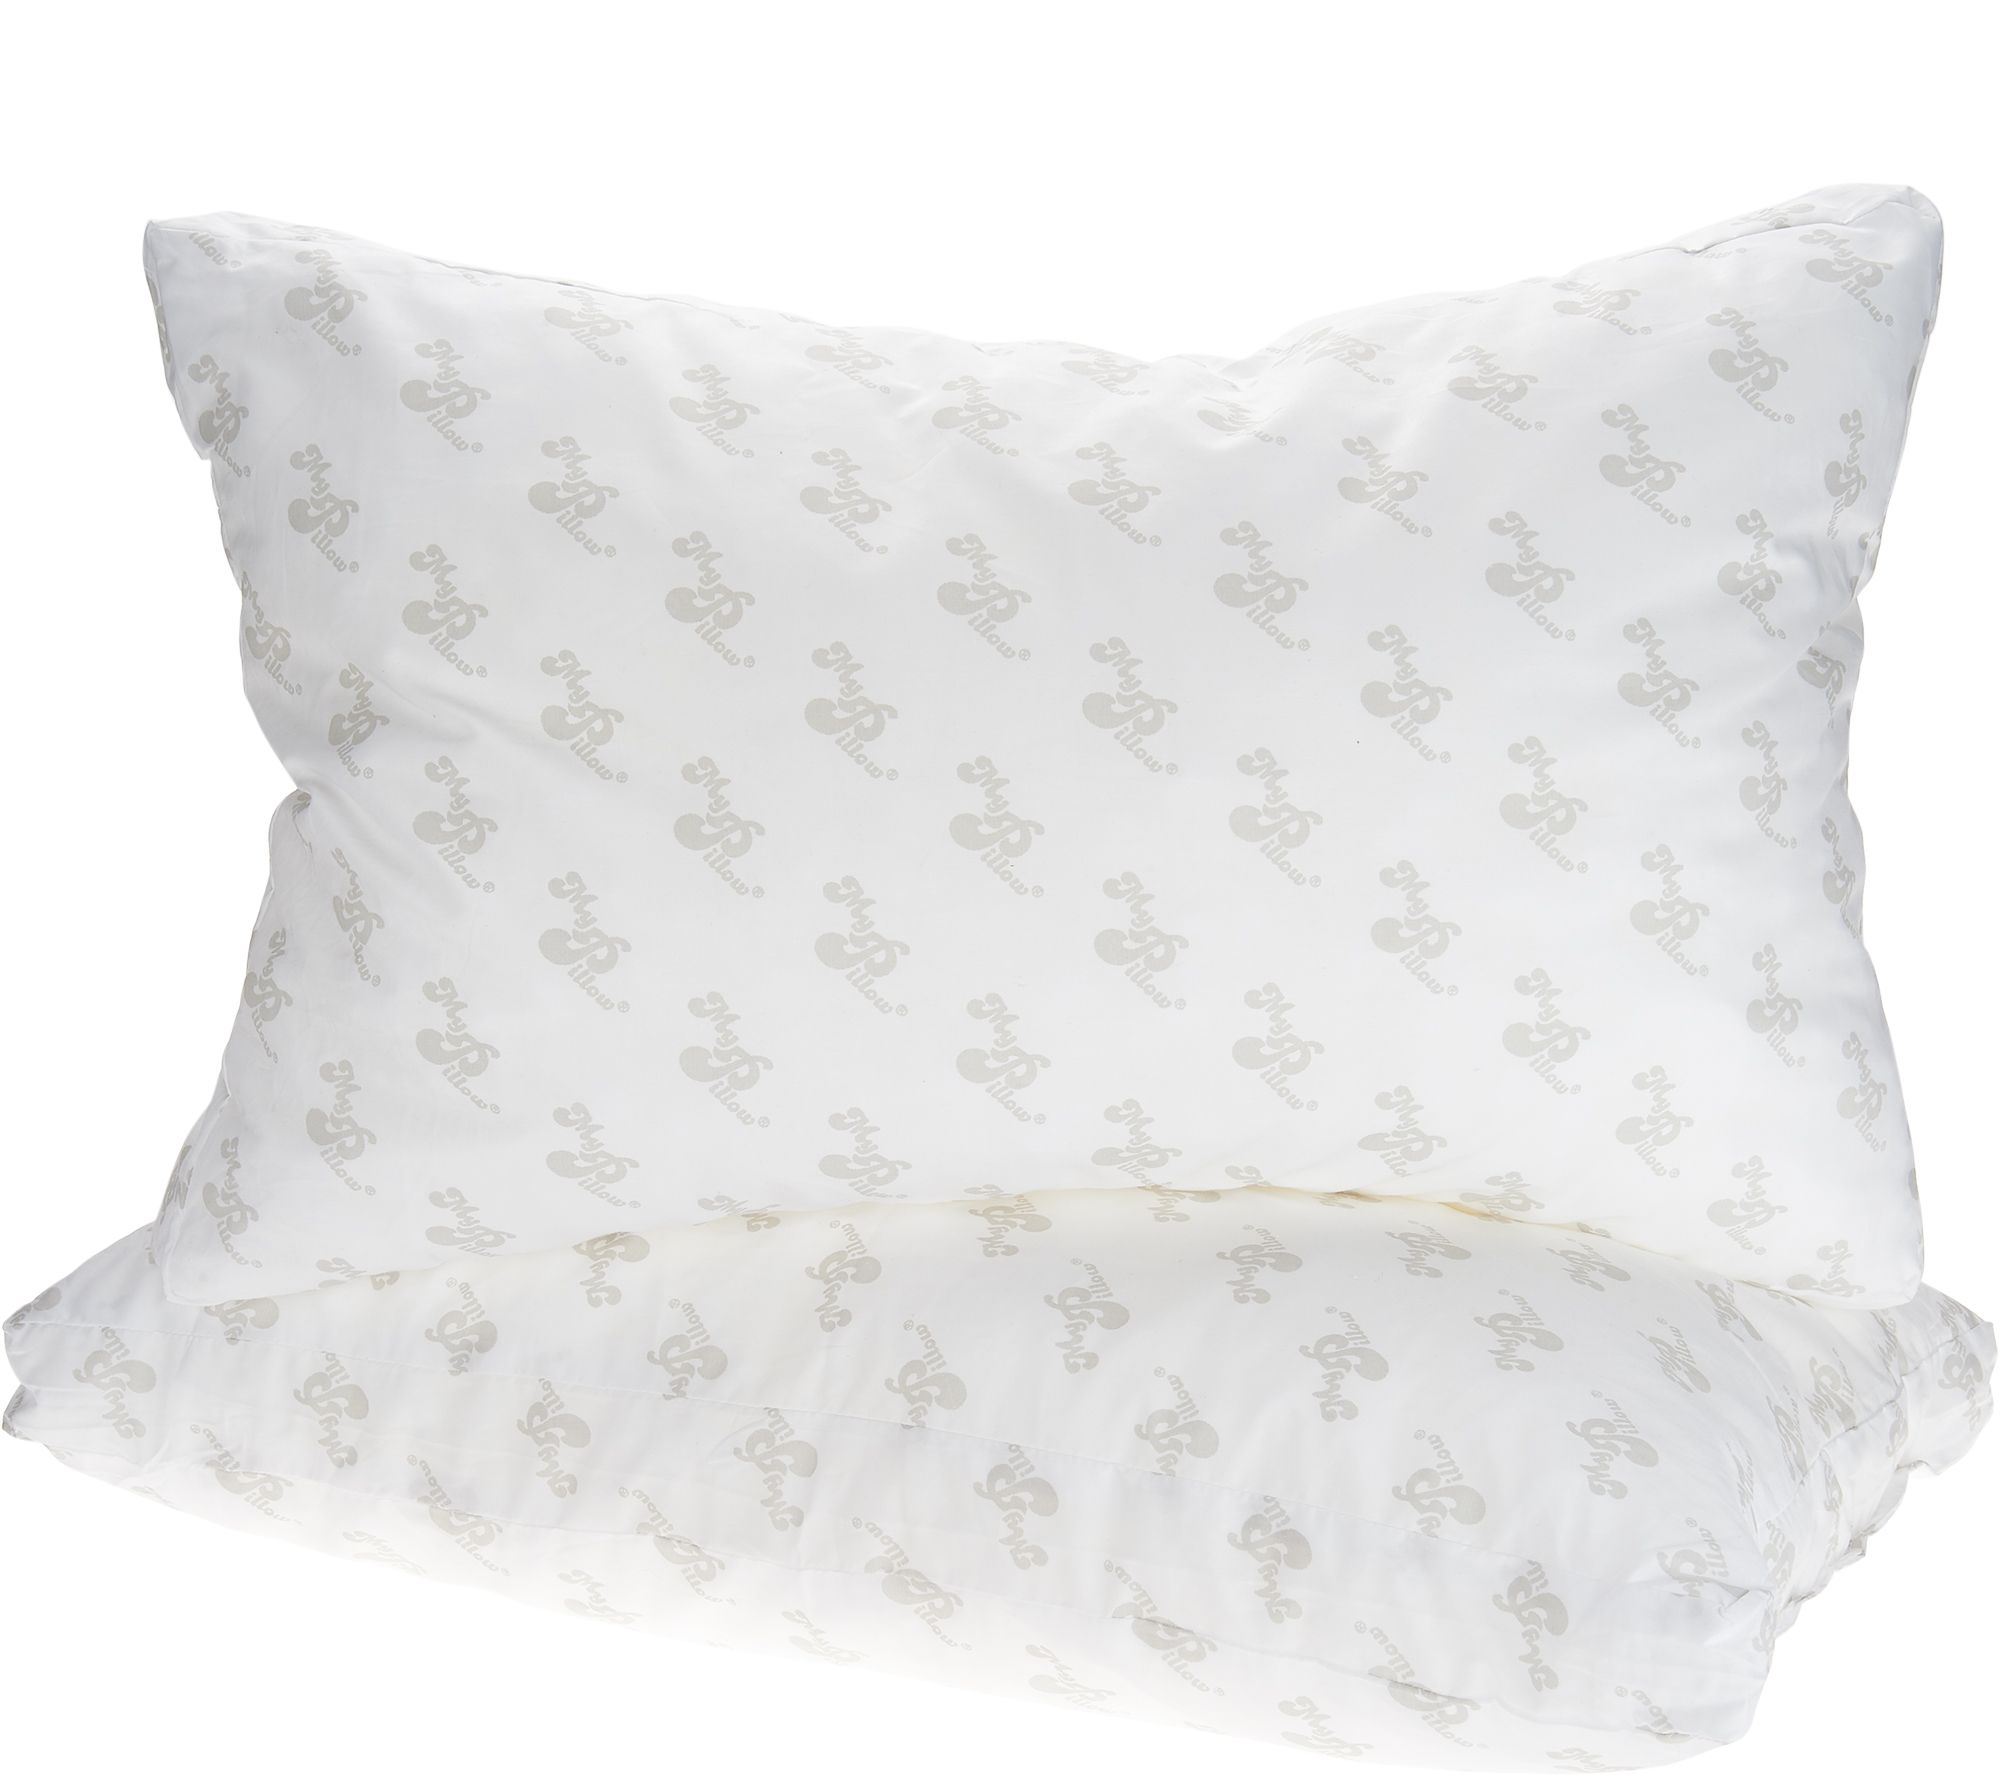 mypillow s2 premium pillows with supima cotton h214215 best seller